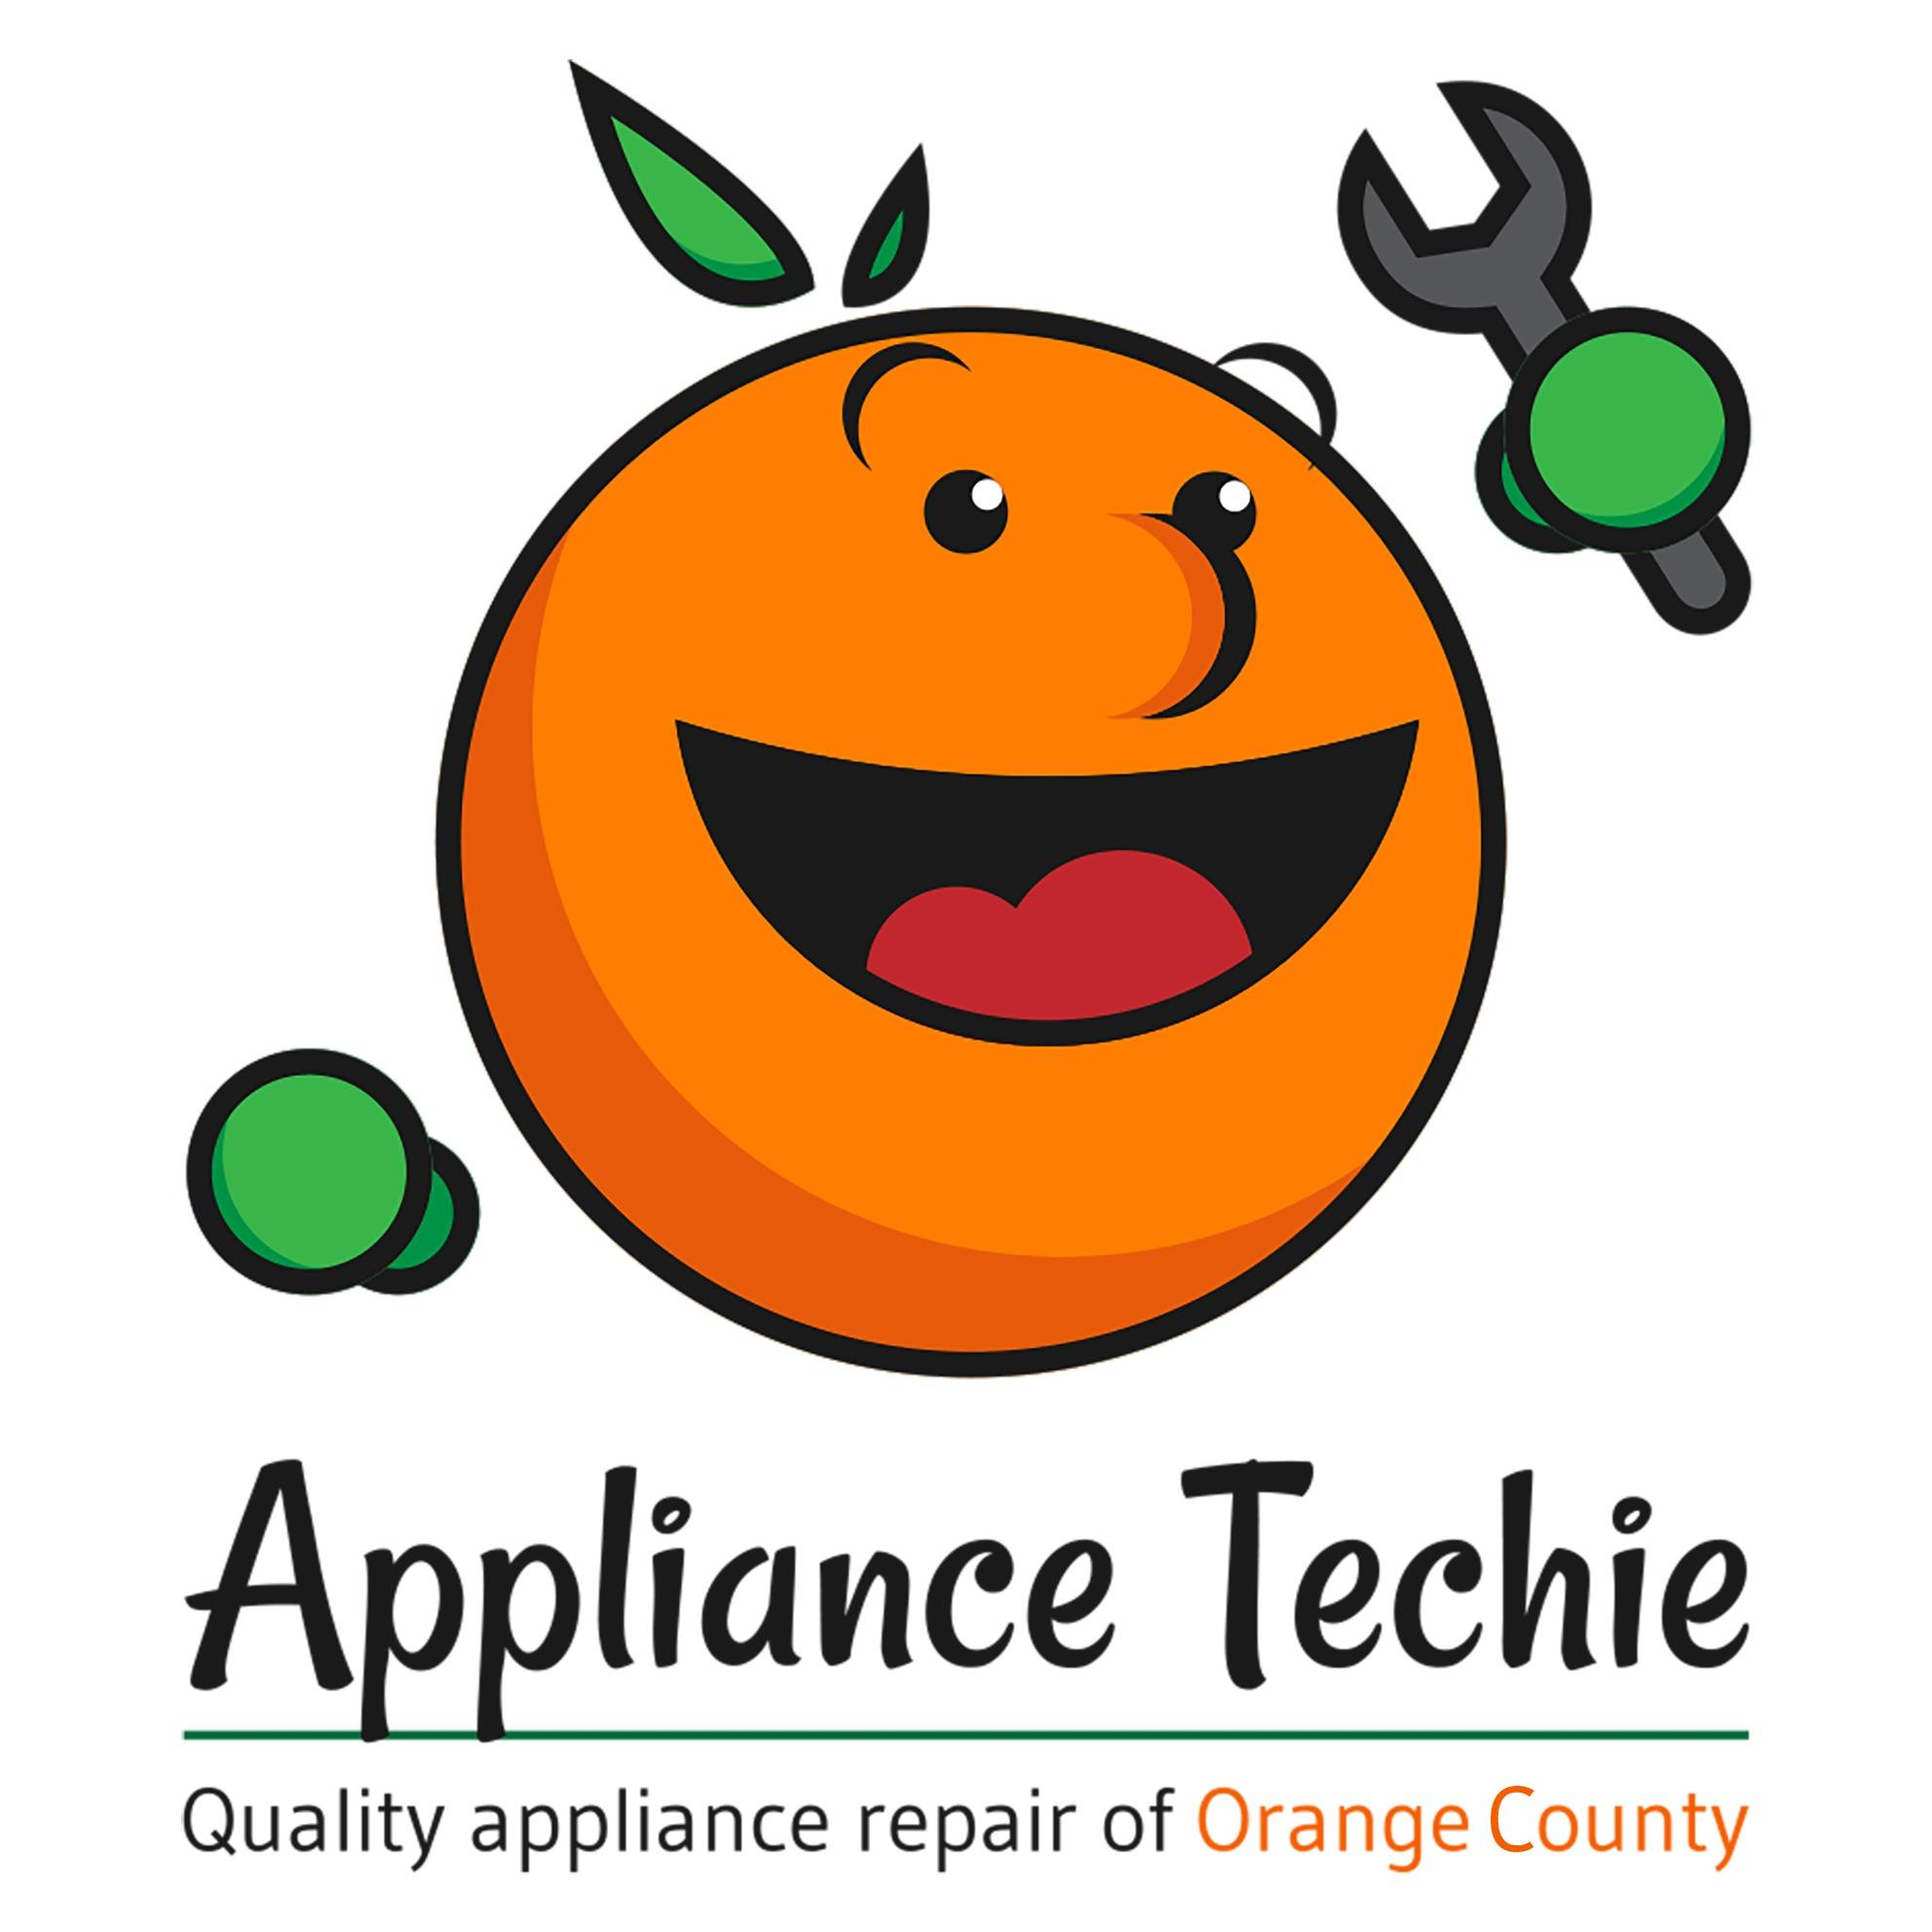 Appliance Techie image 1